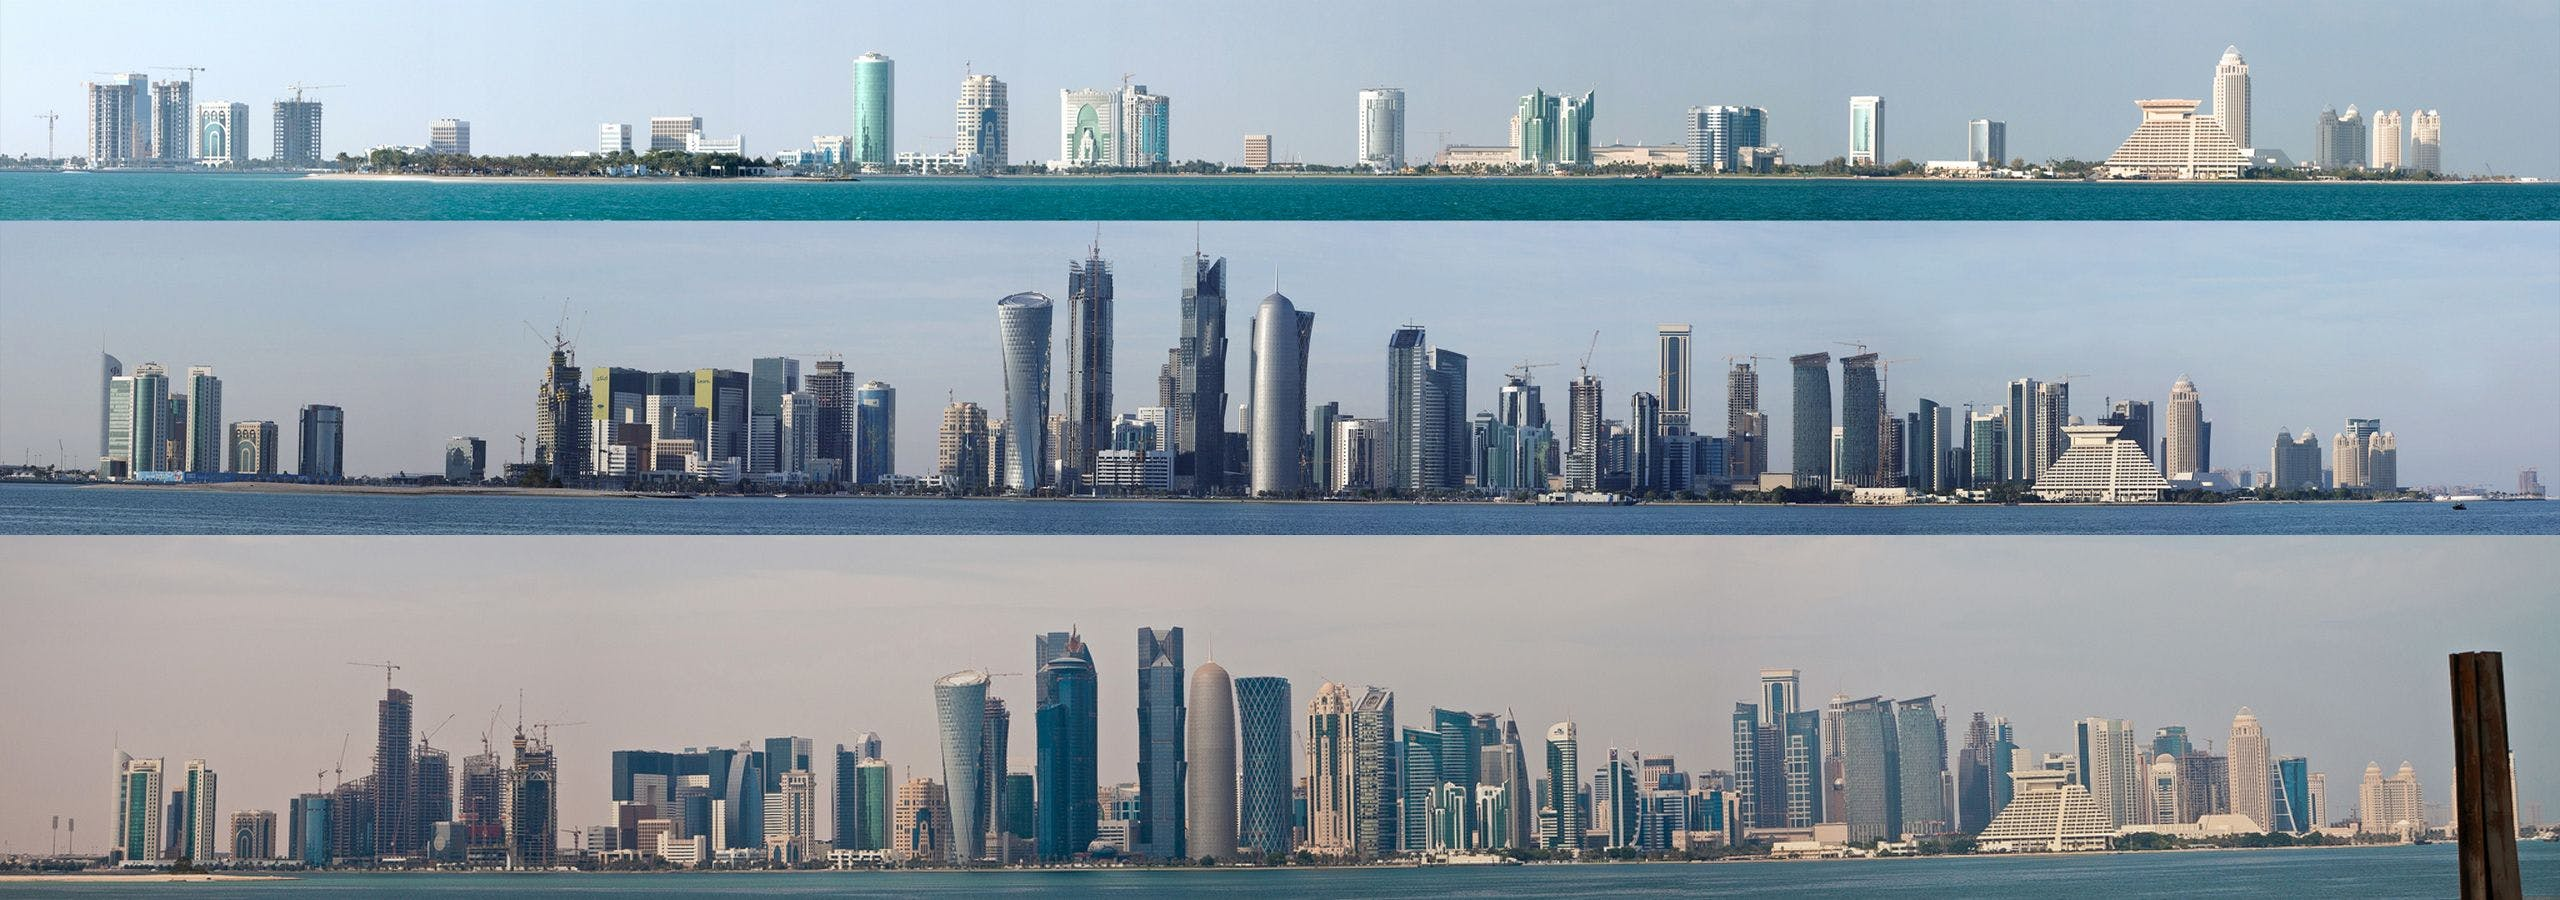 aae62b36be18a The monuments to Qatar s phenomenal growth